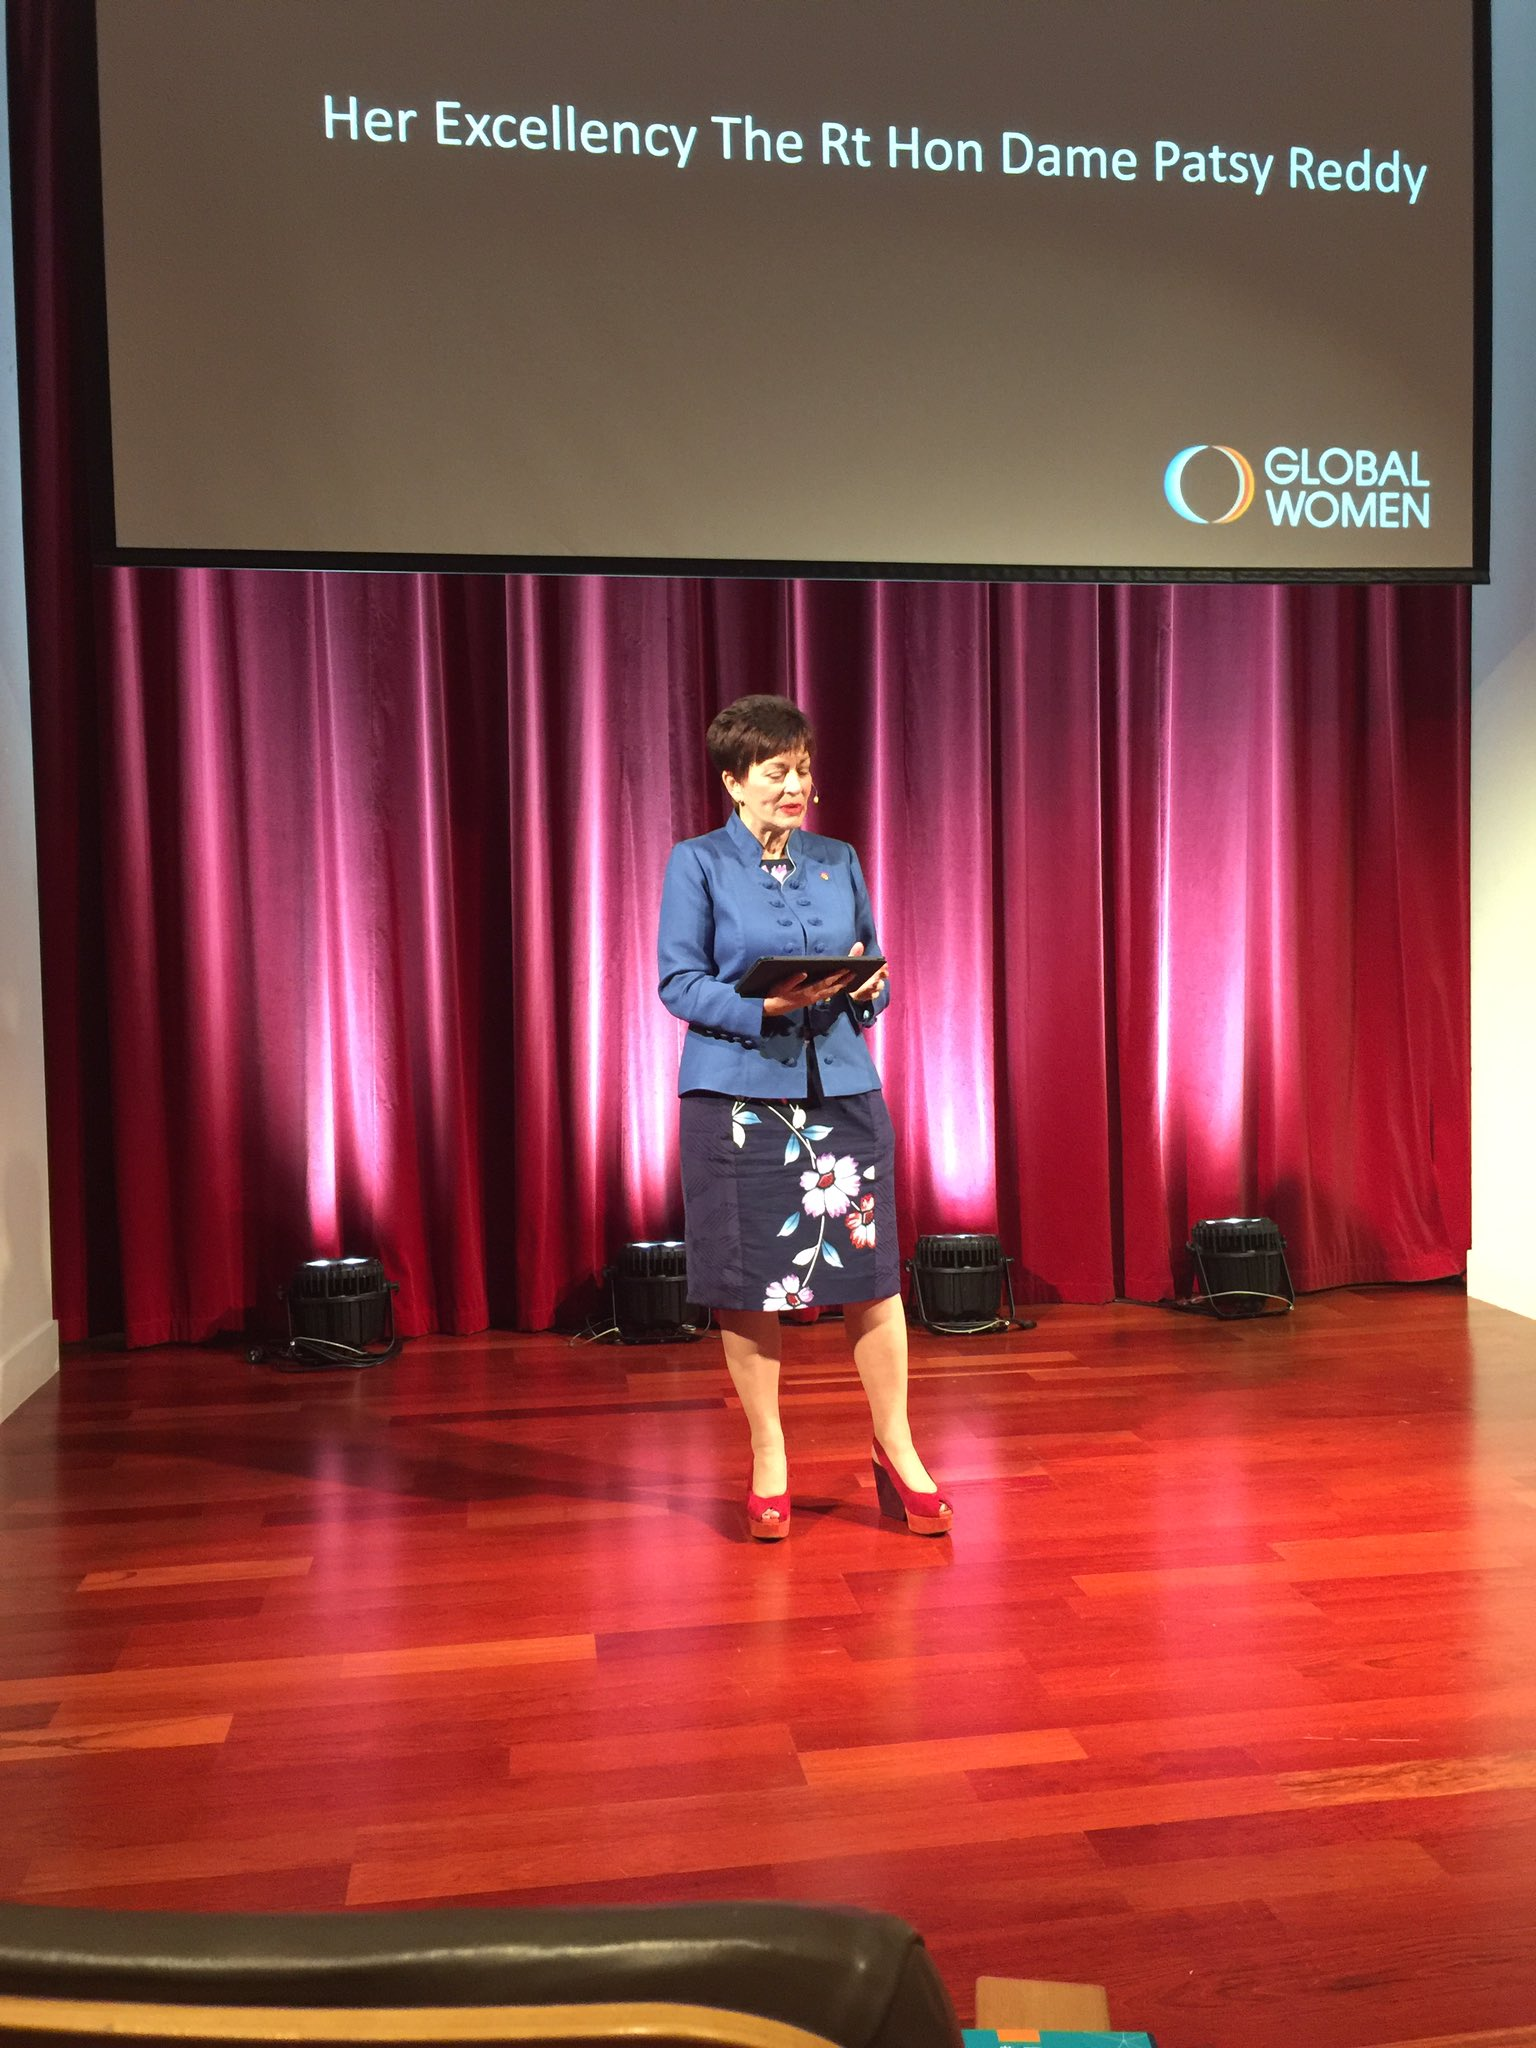 First up, is Dame Patsy Reddy, #gwmember, business legend and NZ's Governor General @GovGeneralNZ #BeBoldForChange https://t.co/vdRCcGDWk9